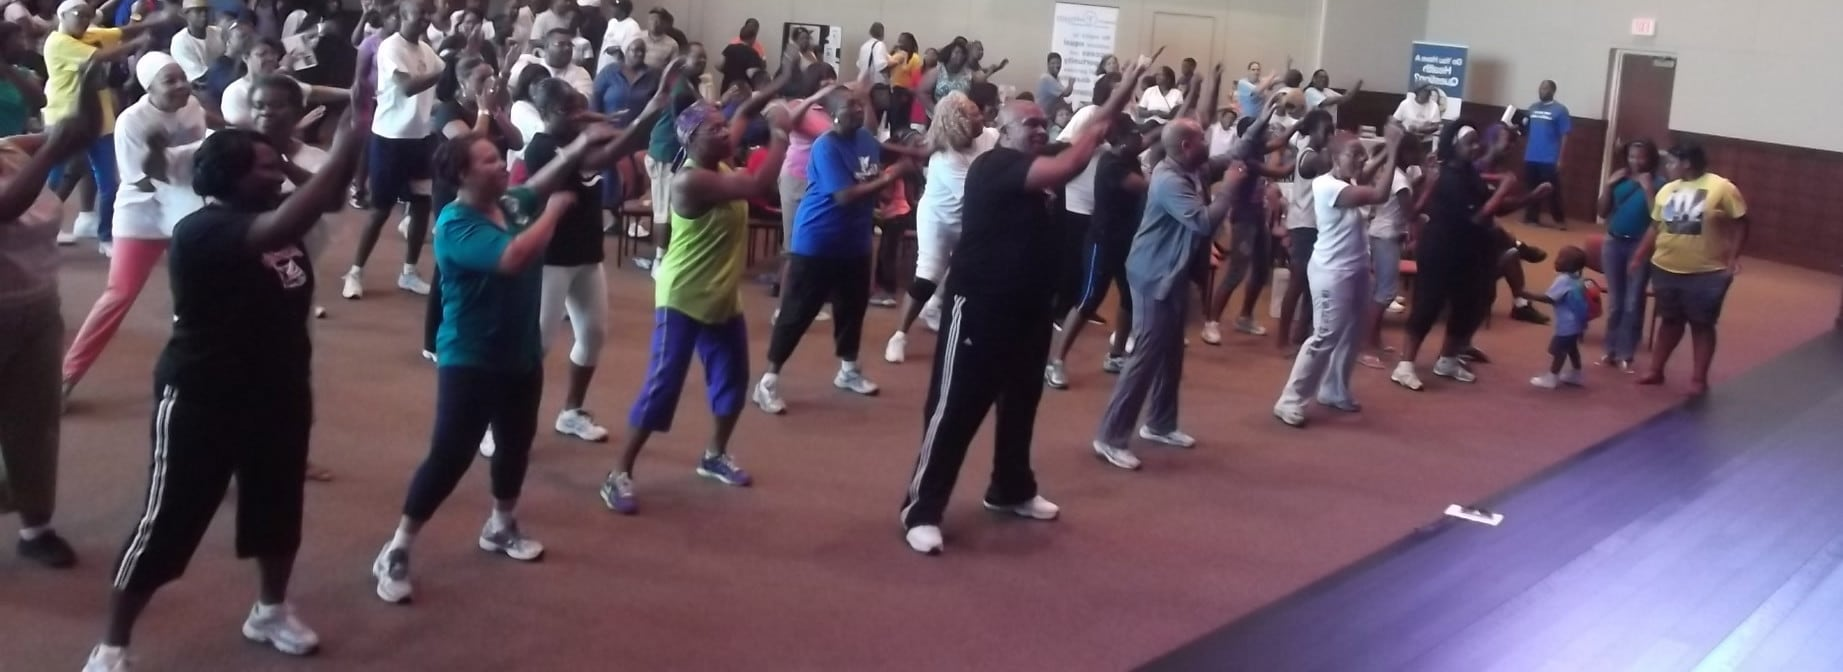 Churches Focus on a New You and Healthier Temple